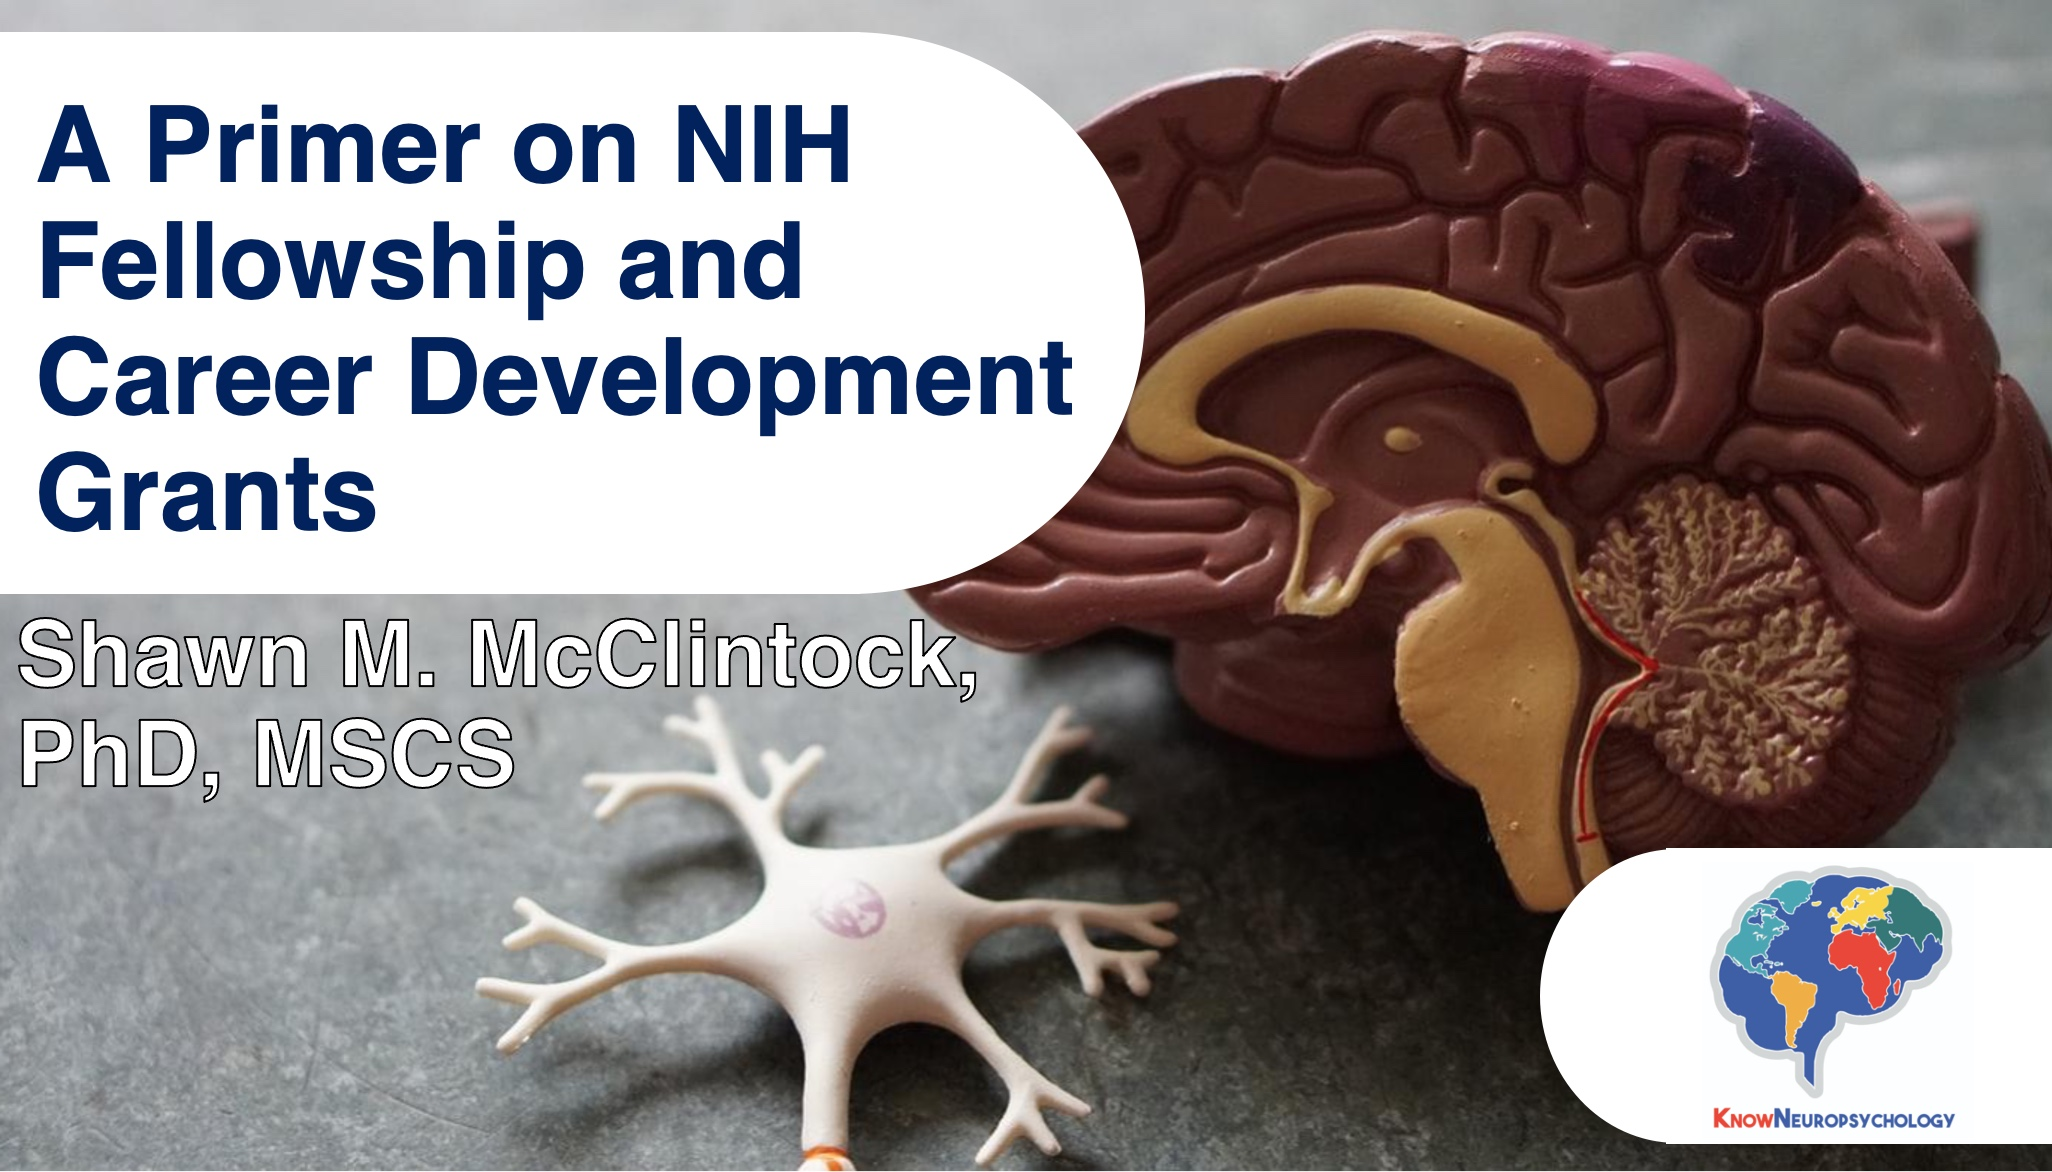 A primer on NIH fellowship and career development grants by Dr. Shawn McClintock